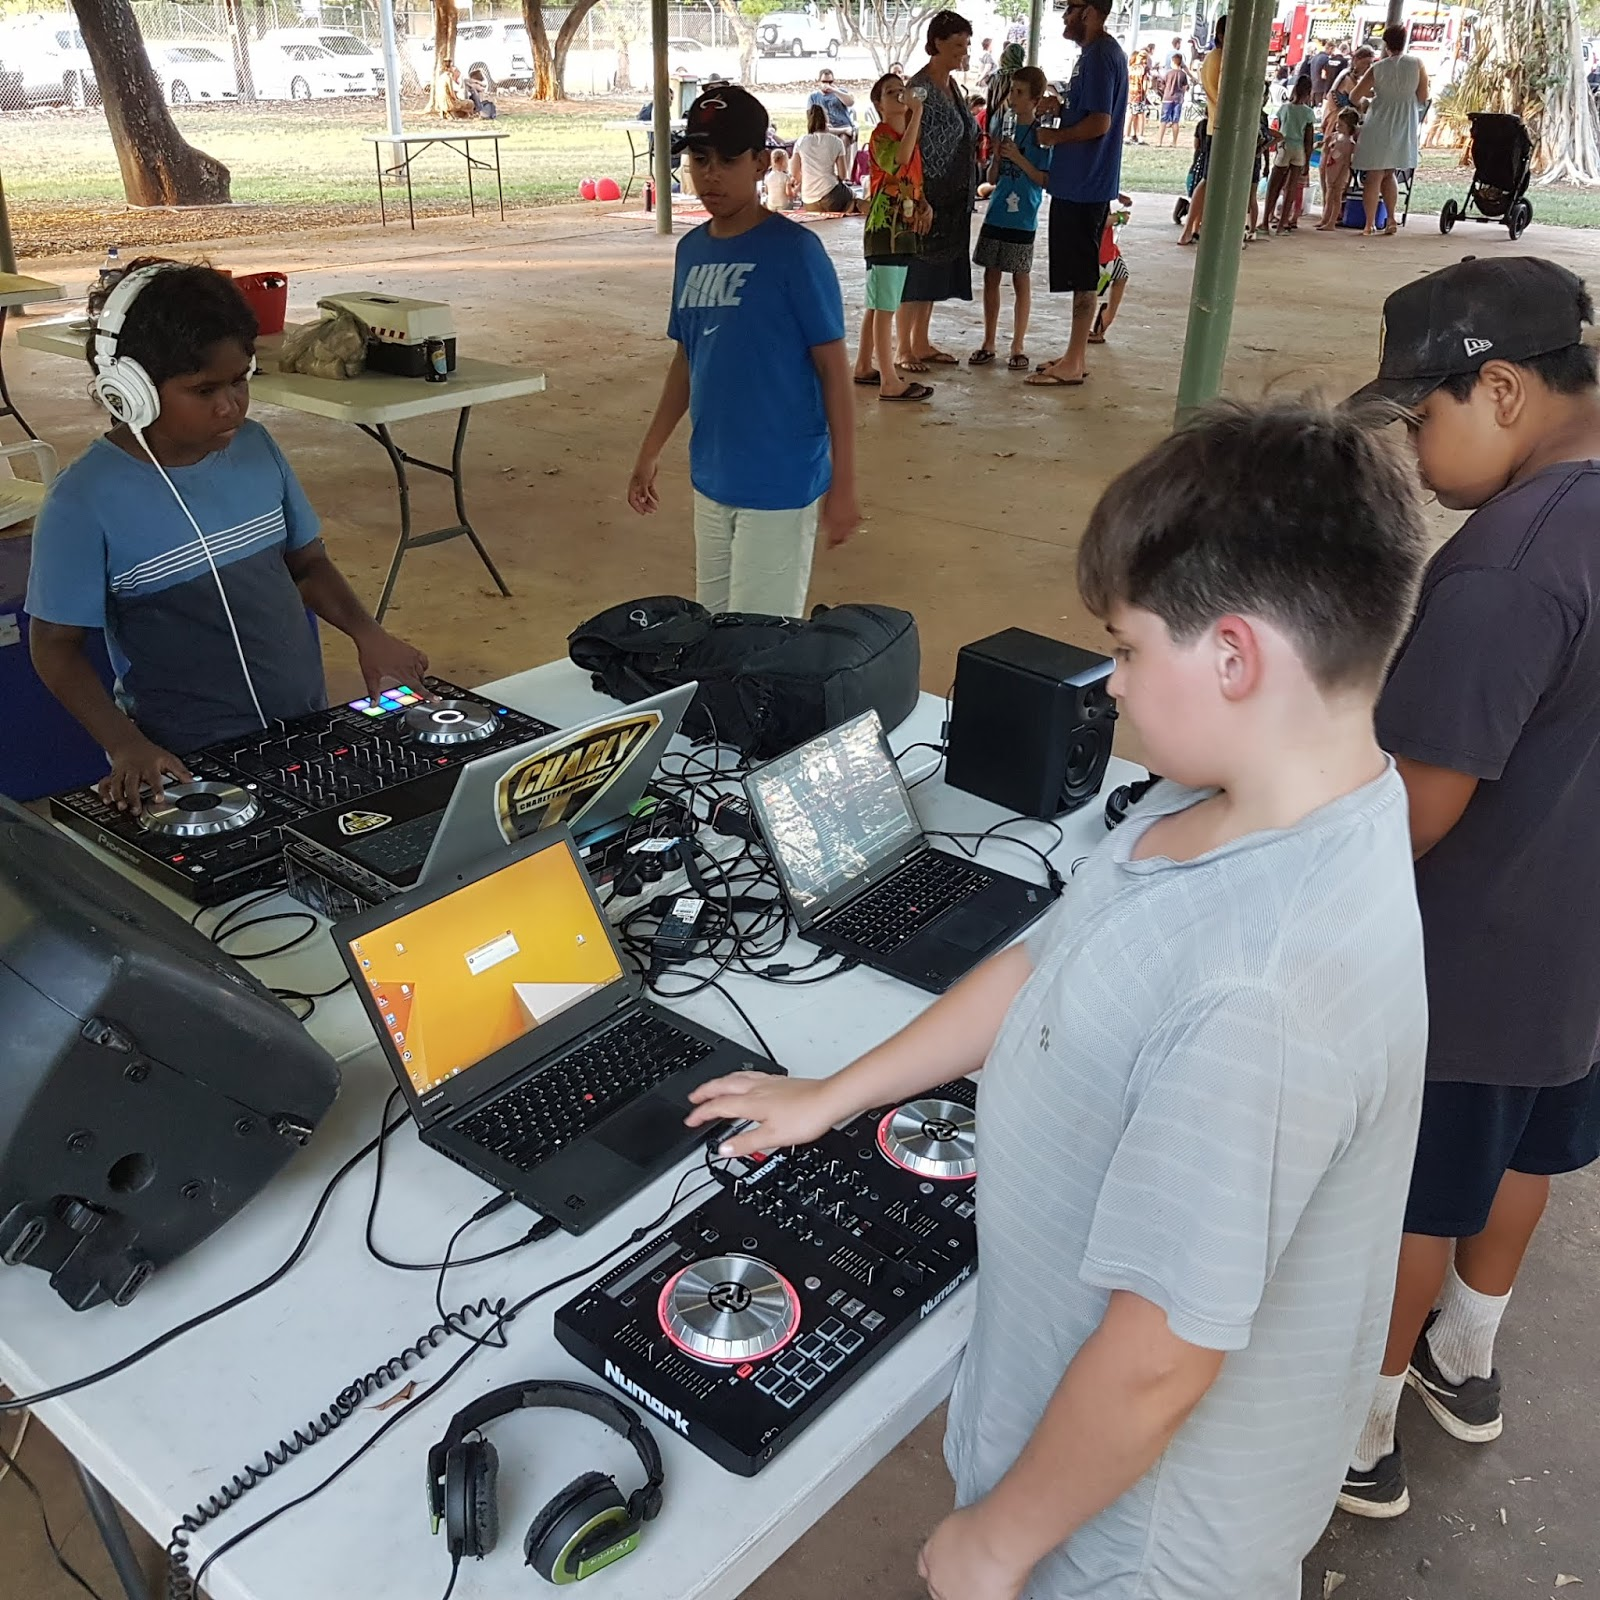 Music Sports Amp Mentoring To Empower Youth Activities